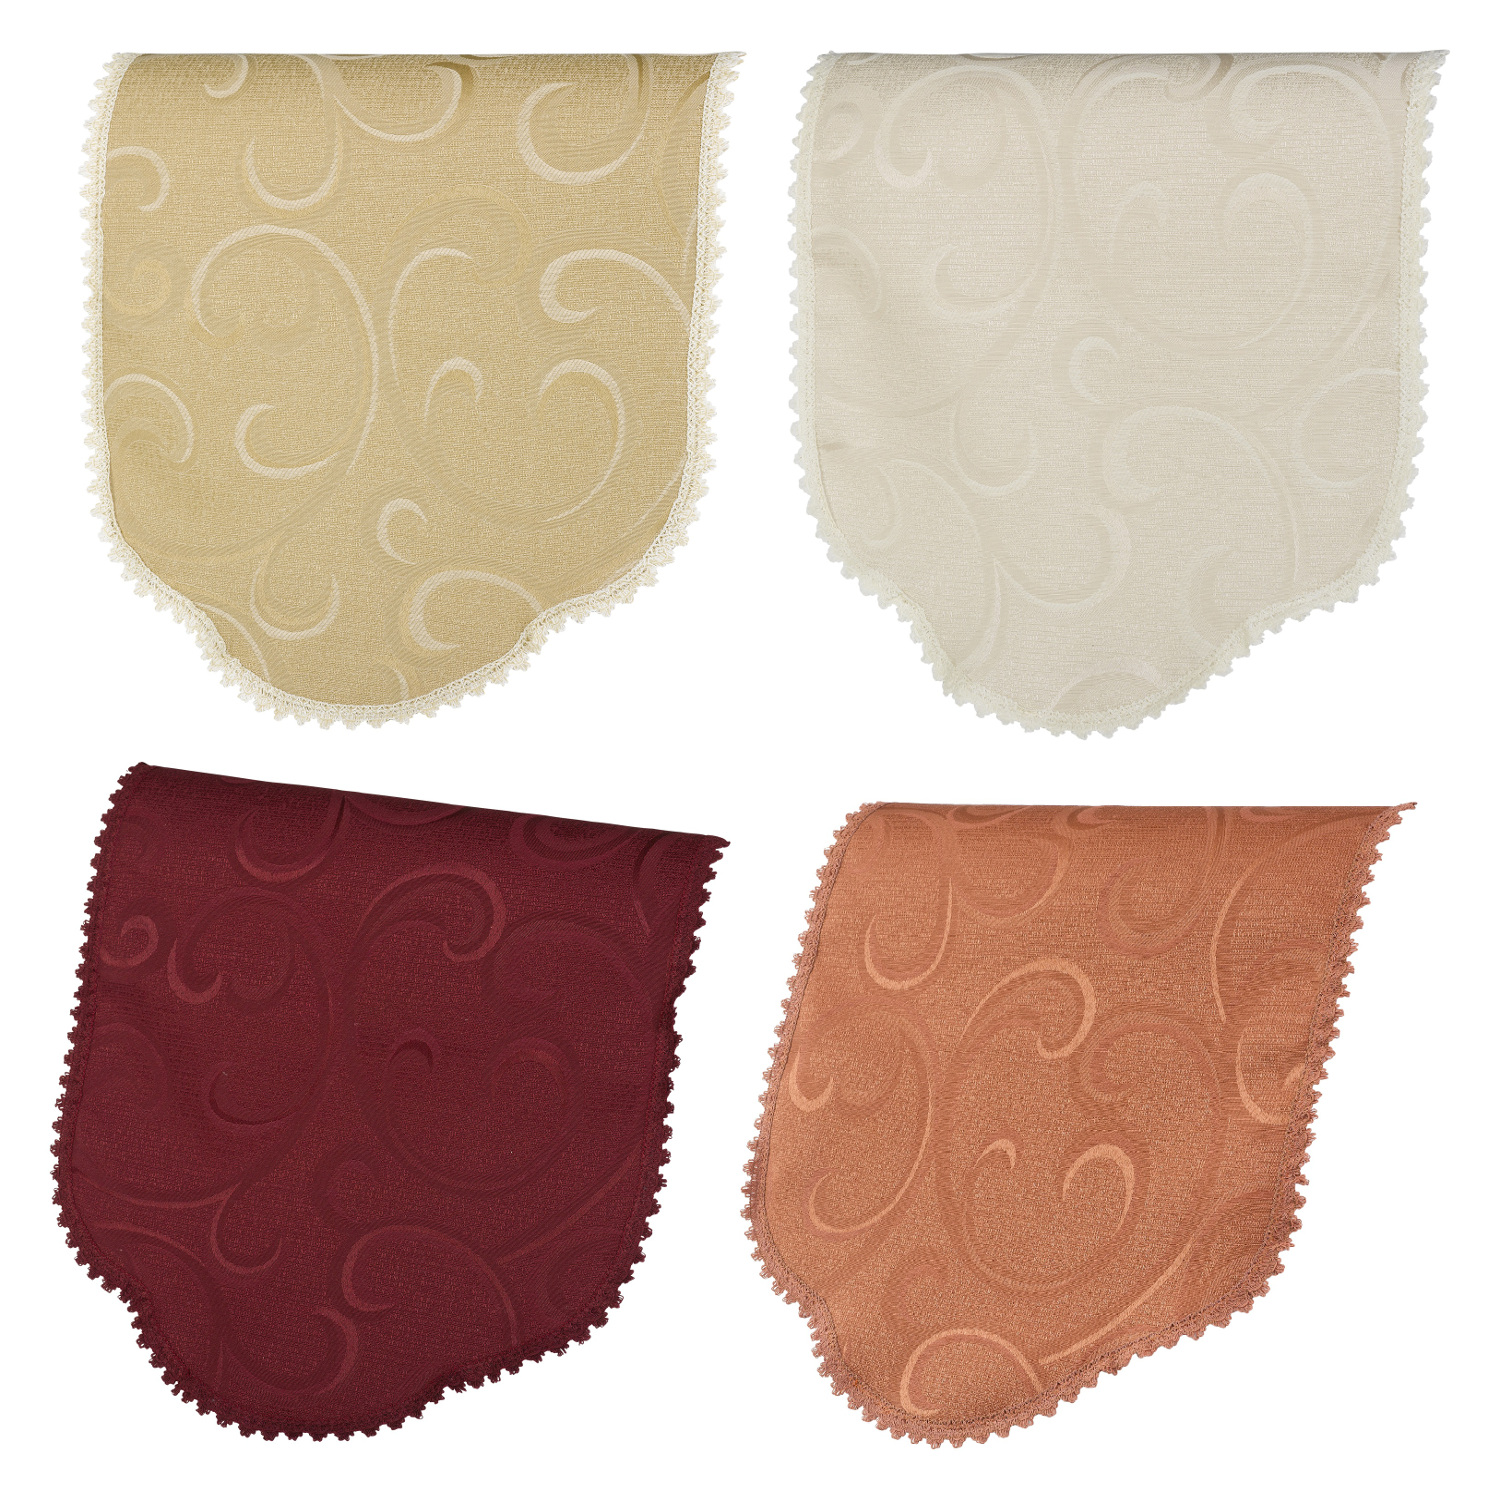 Antimacassar single chair back swirl pattern lace trim for Chair back covers for leather chairs